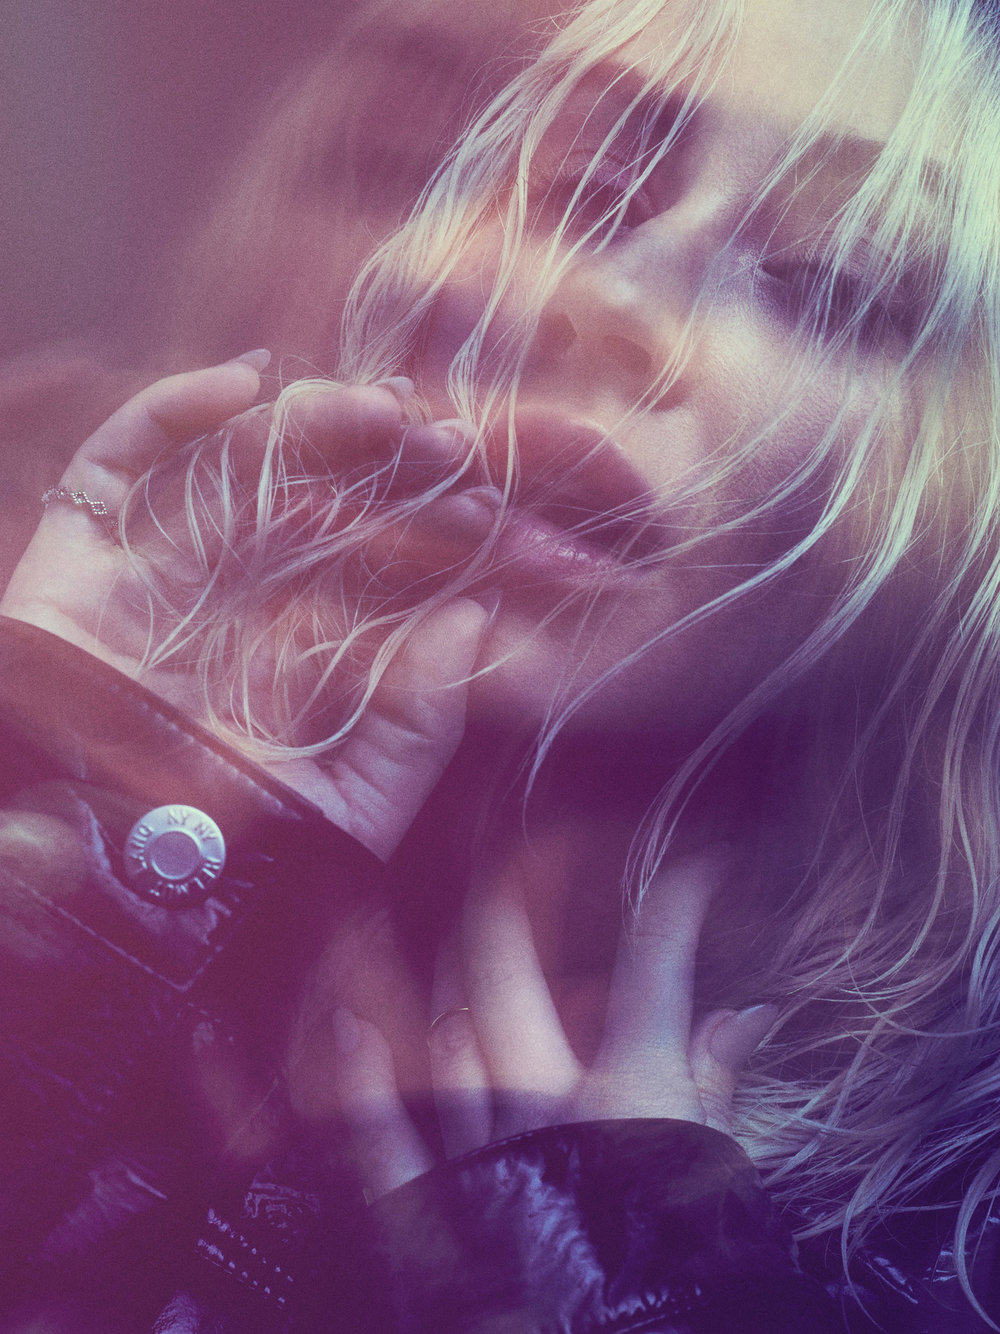 181004_Billboard_ChristinaAguilera_0373.jpg